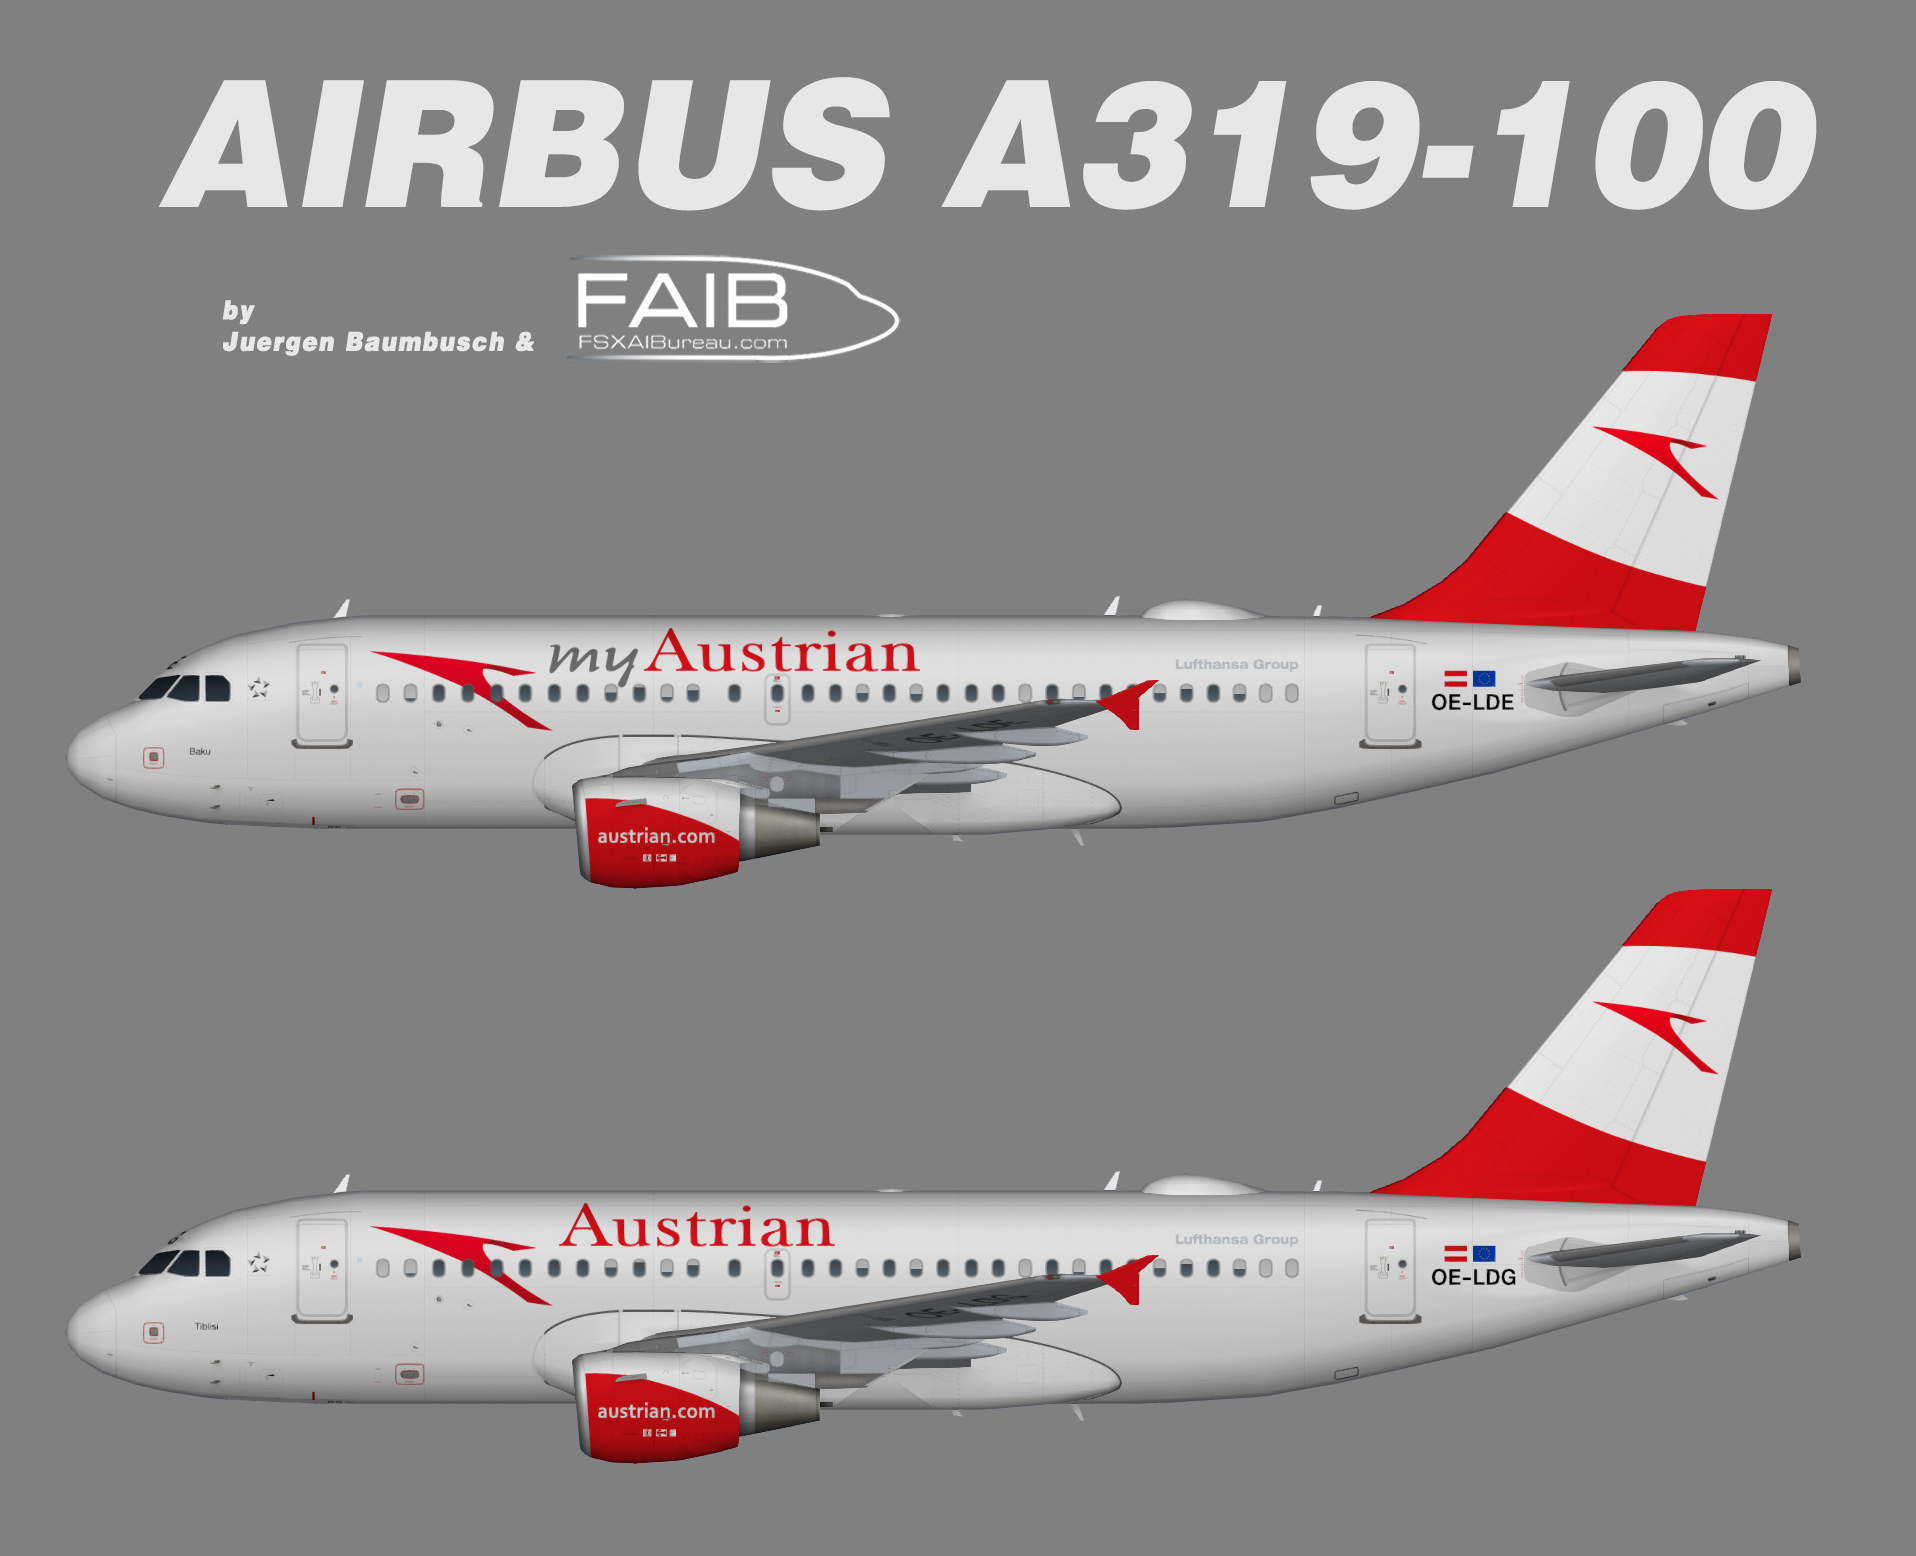 Austrian Airlines Airbus A319-100